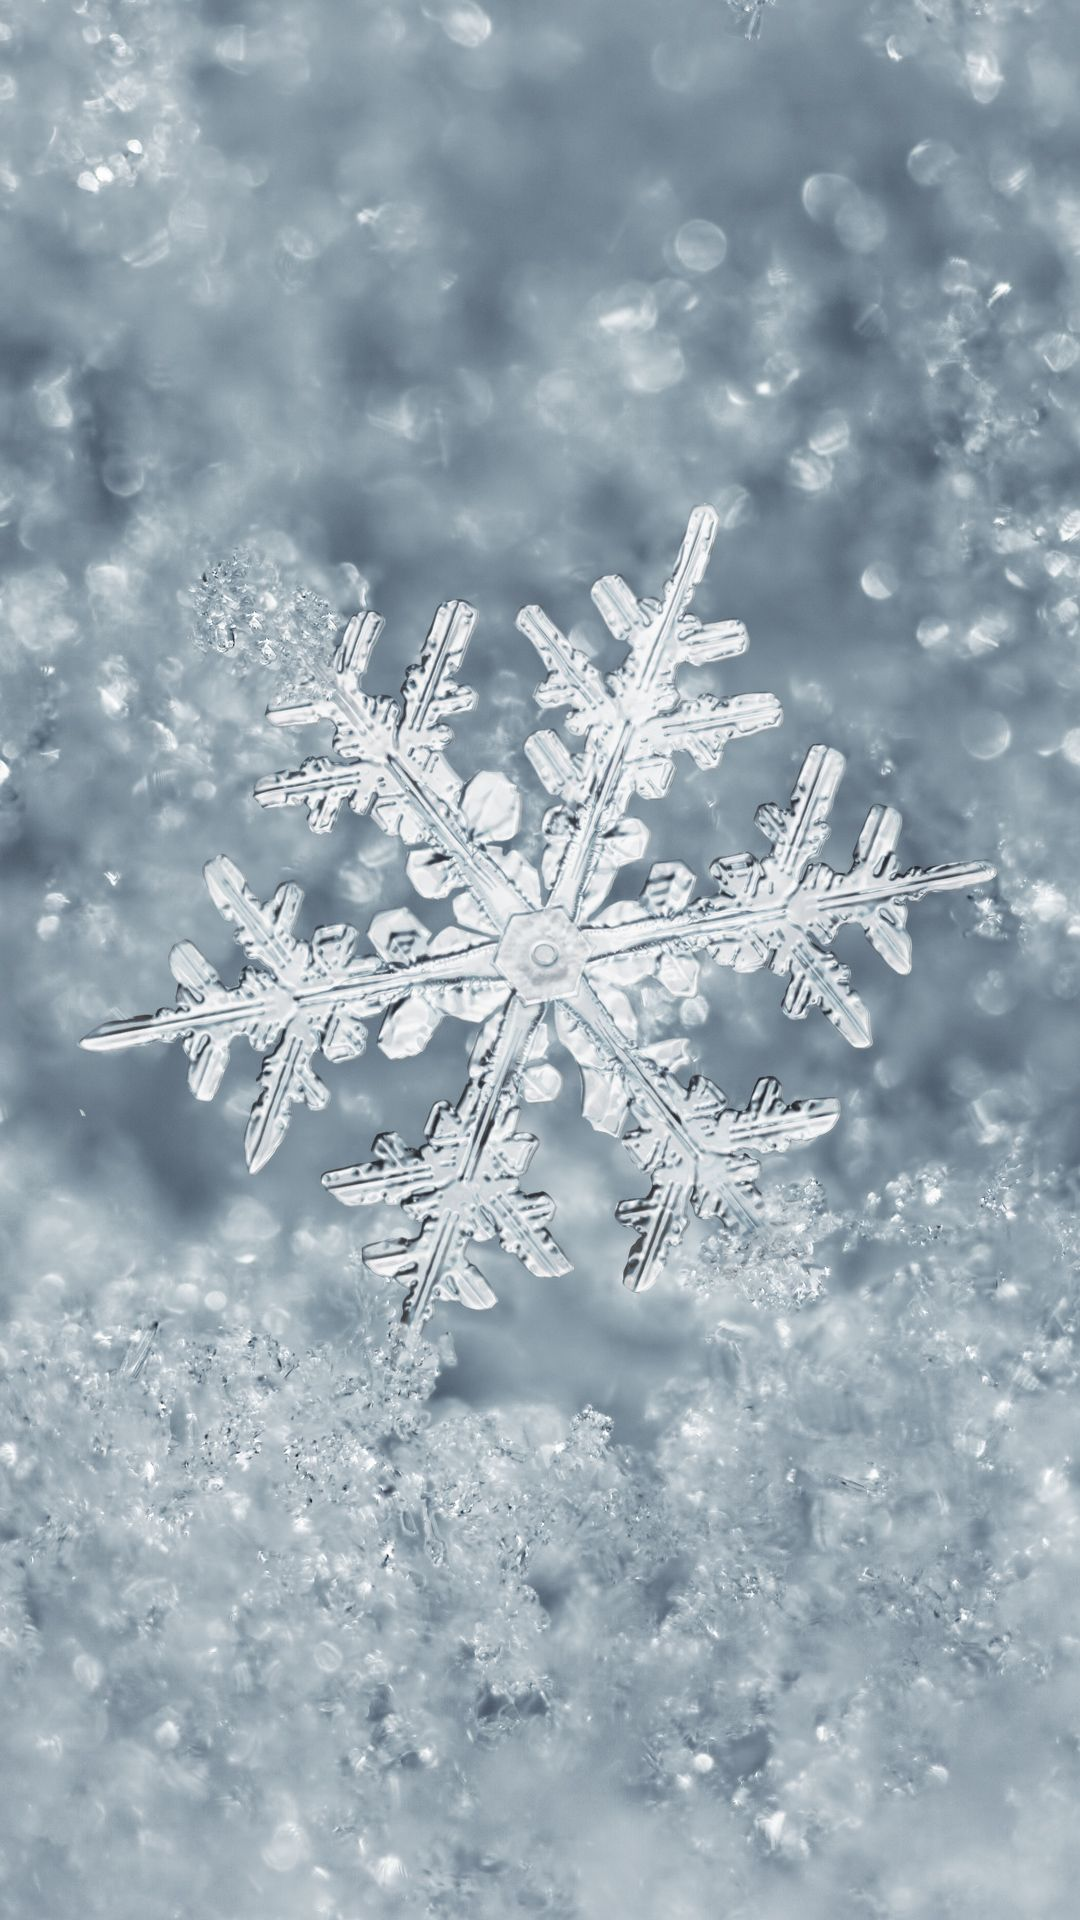 Winter Love Wallpaper Iphone : Ice Snowflake iPhone 7 Plus Wallpaper Winter Wallpaper! Pinterest Wallpaper, Phone and Winter